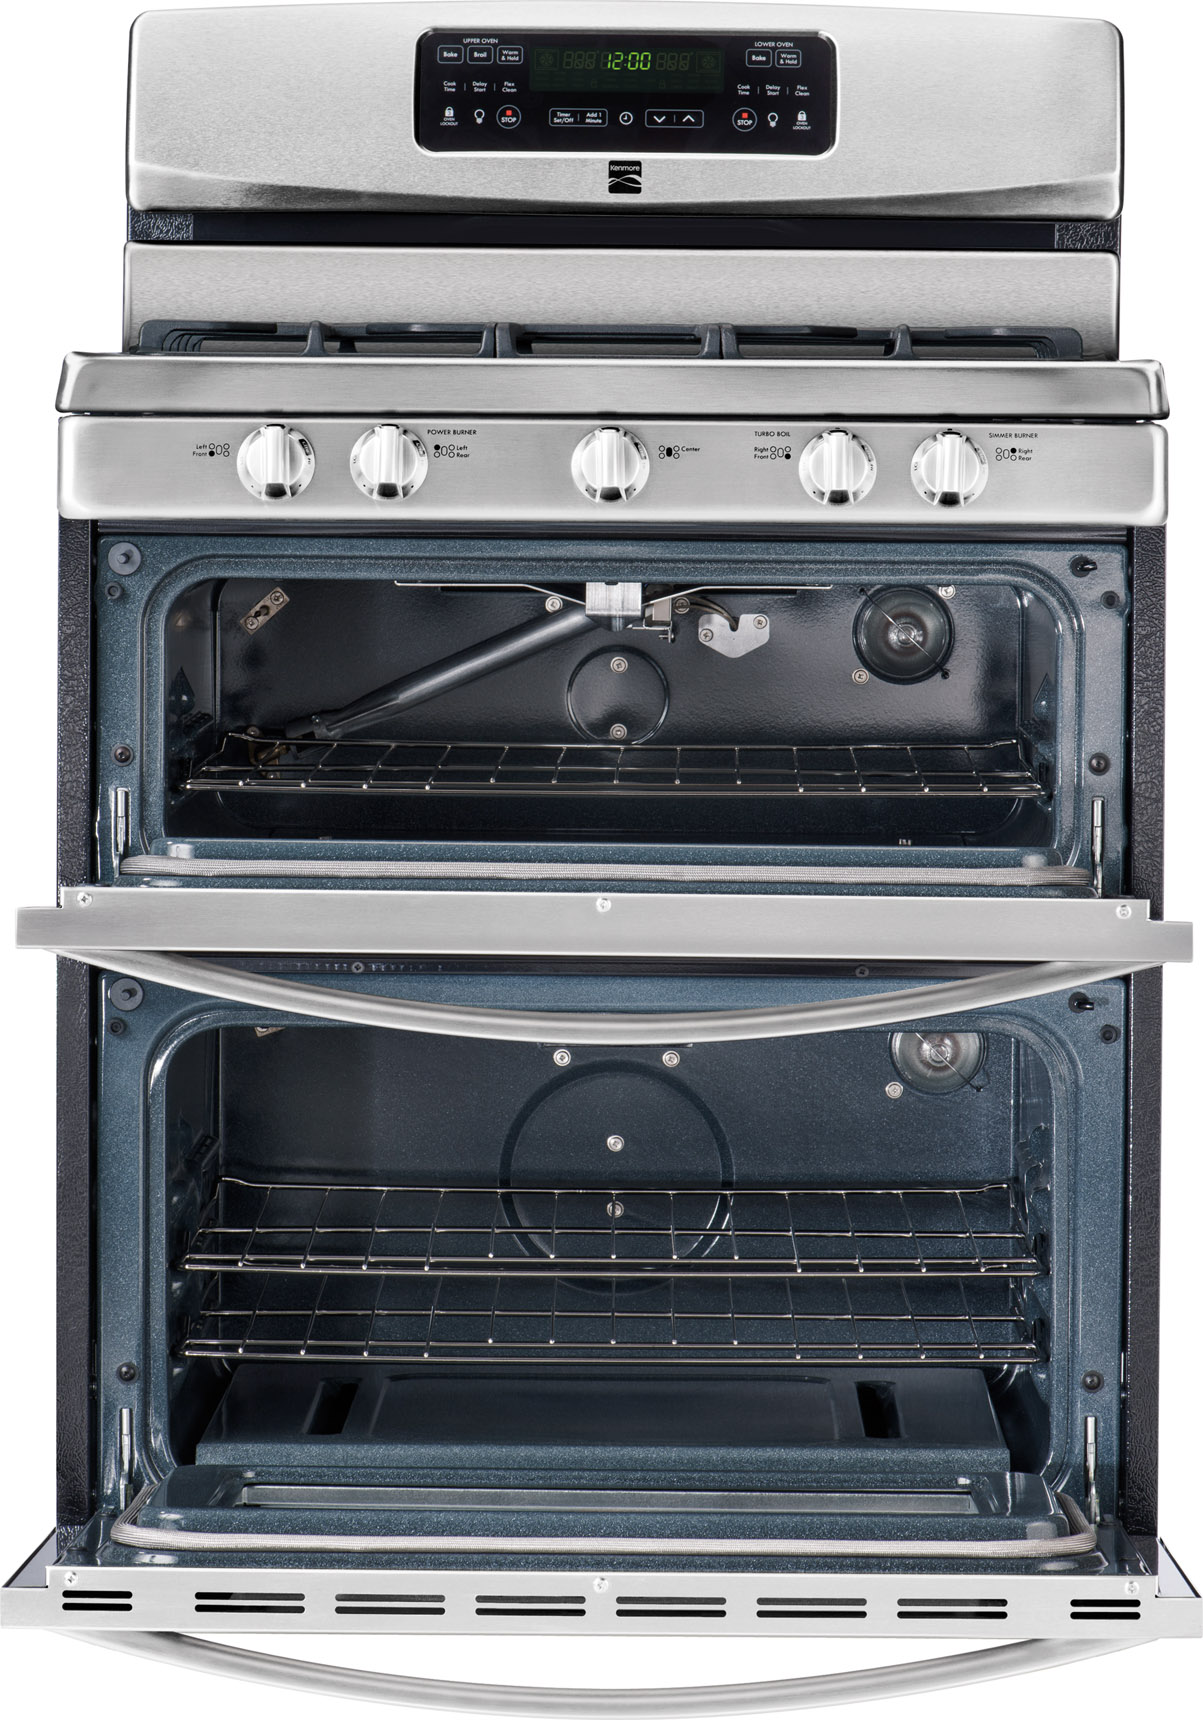 Kenmore 5.8 cu. ft. Double-Oven Gas Range - Stainless Steel